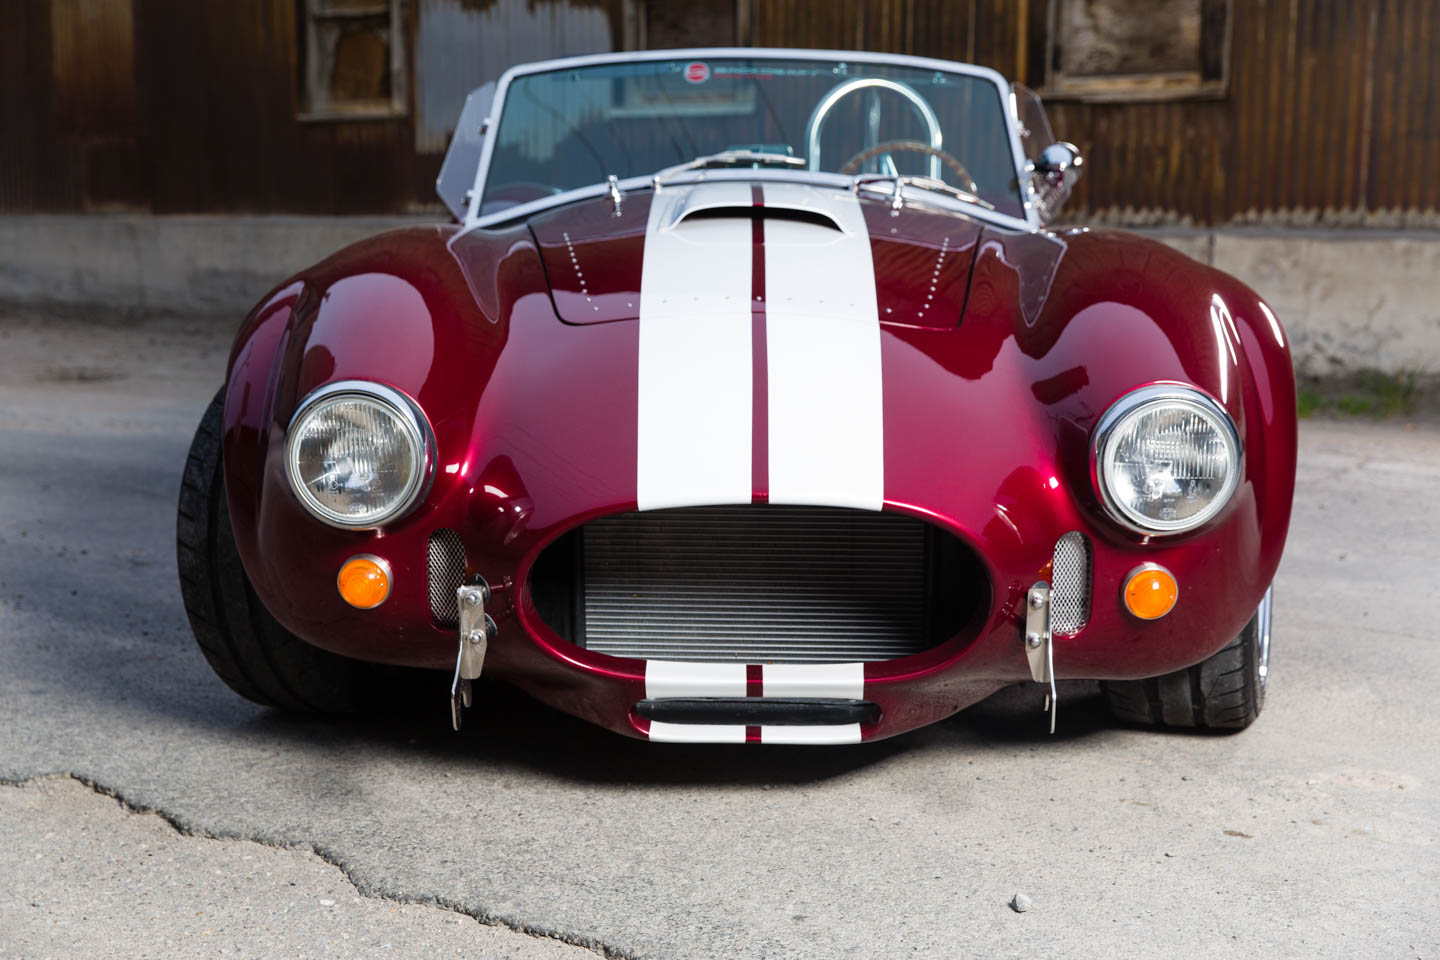 Front view of the Shelby Cobra